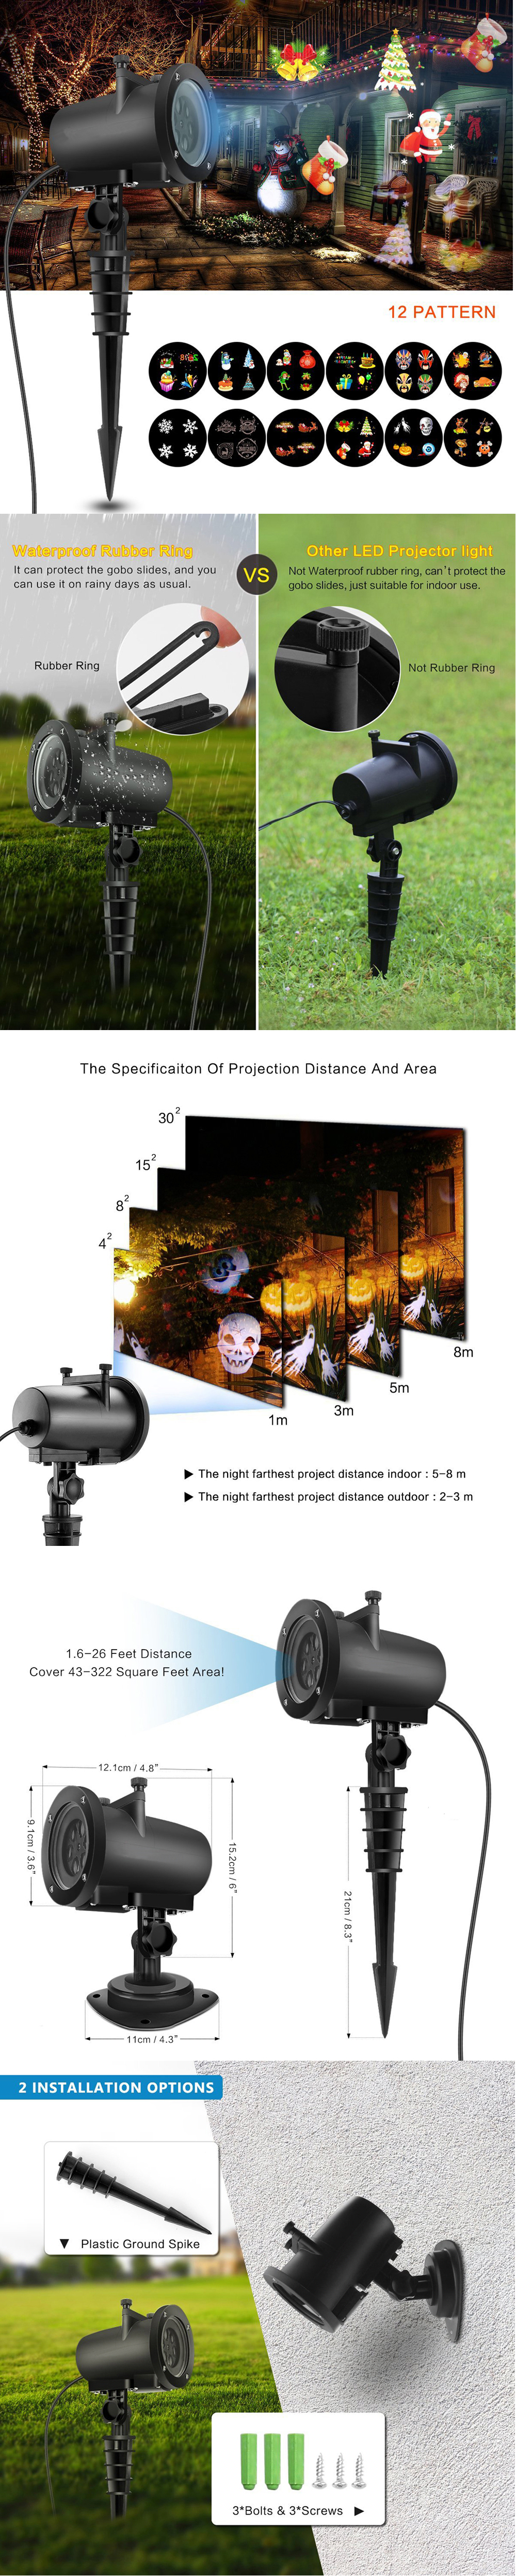 LED Landscape Projector Light 6W Outdoor Indoor Lawn Light with 12 Slides Colorful for Party Holiday Decorative lamp